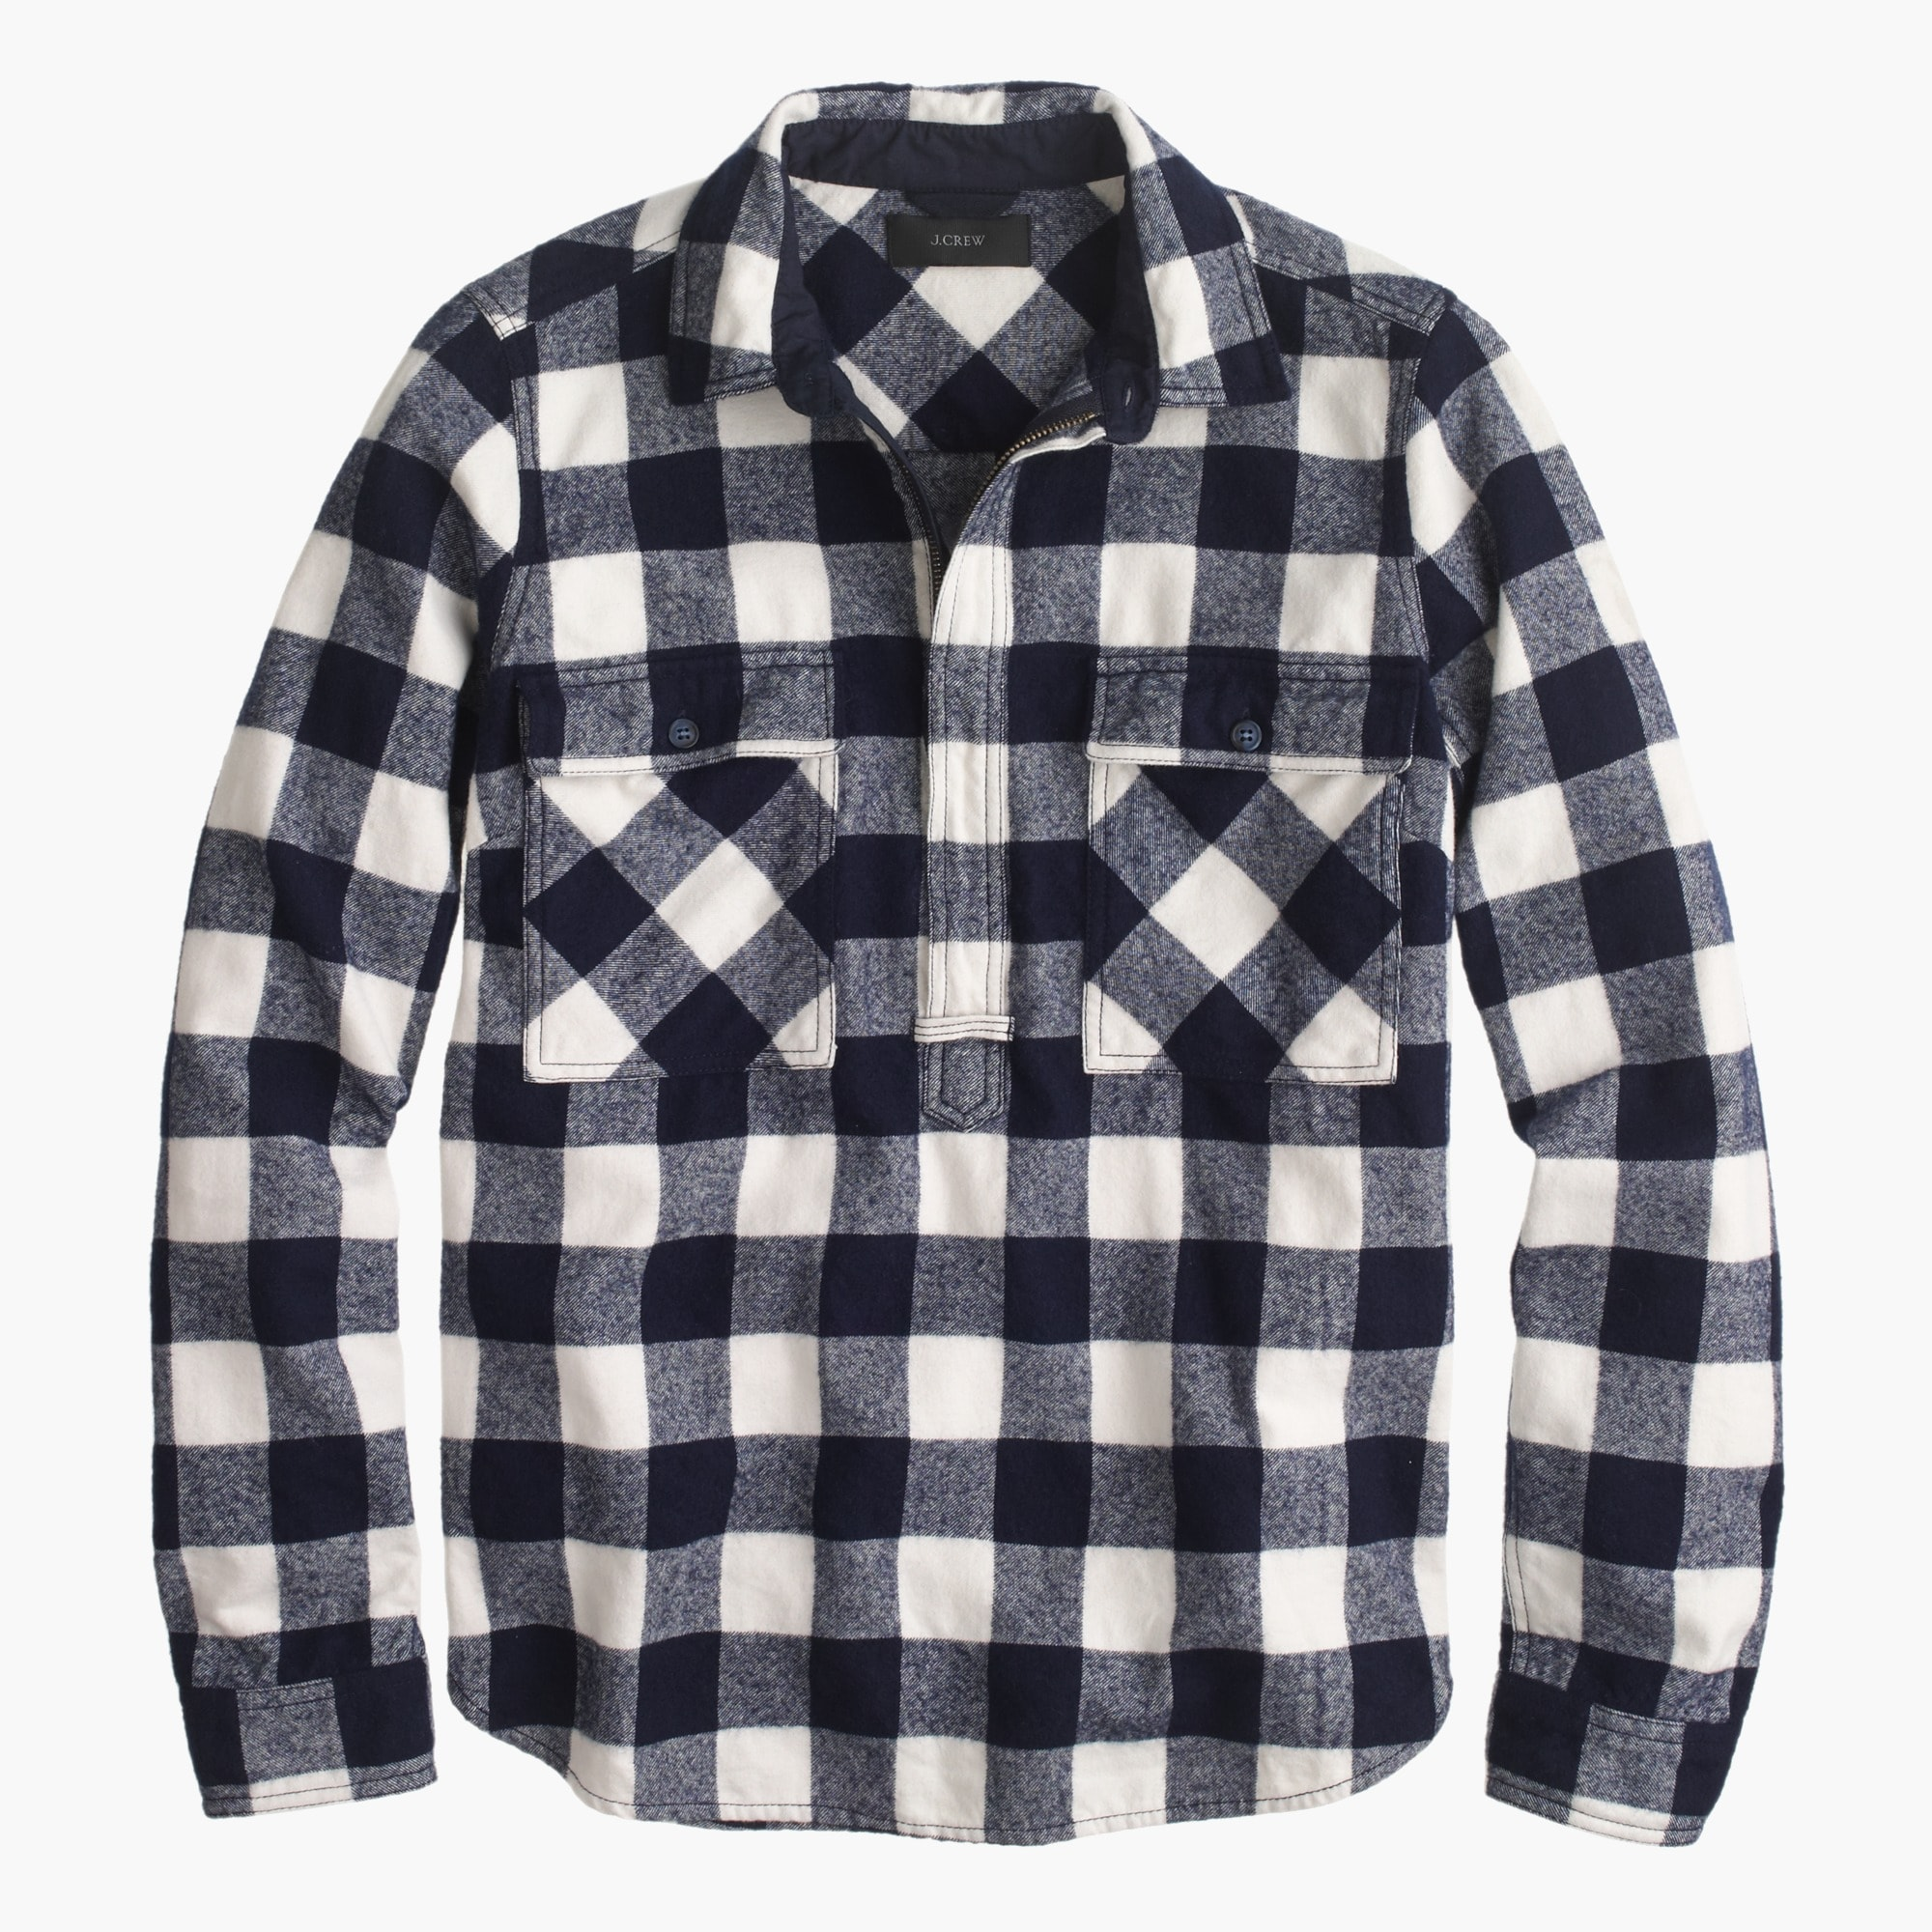 Image 6 for Buffalo check shirt-jacket